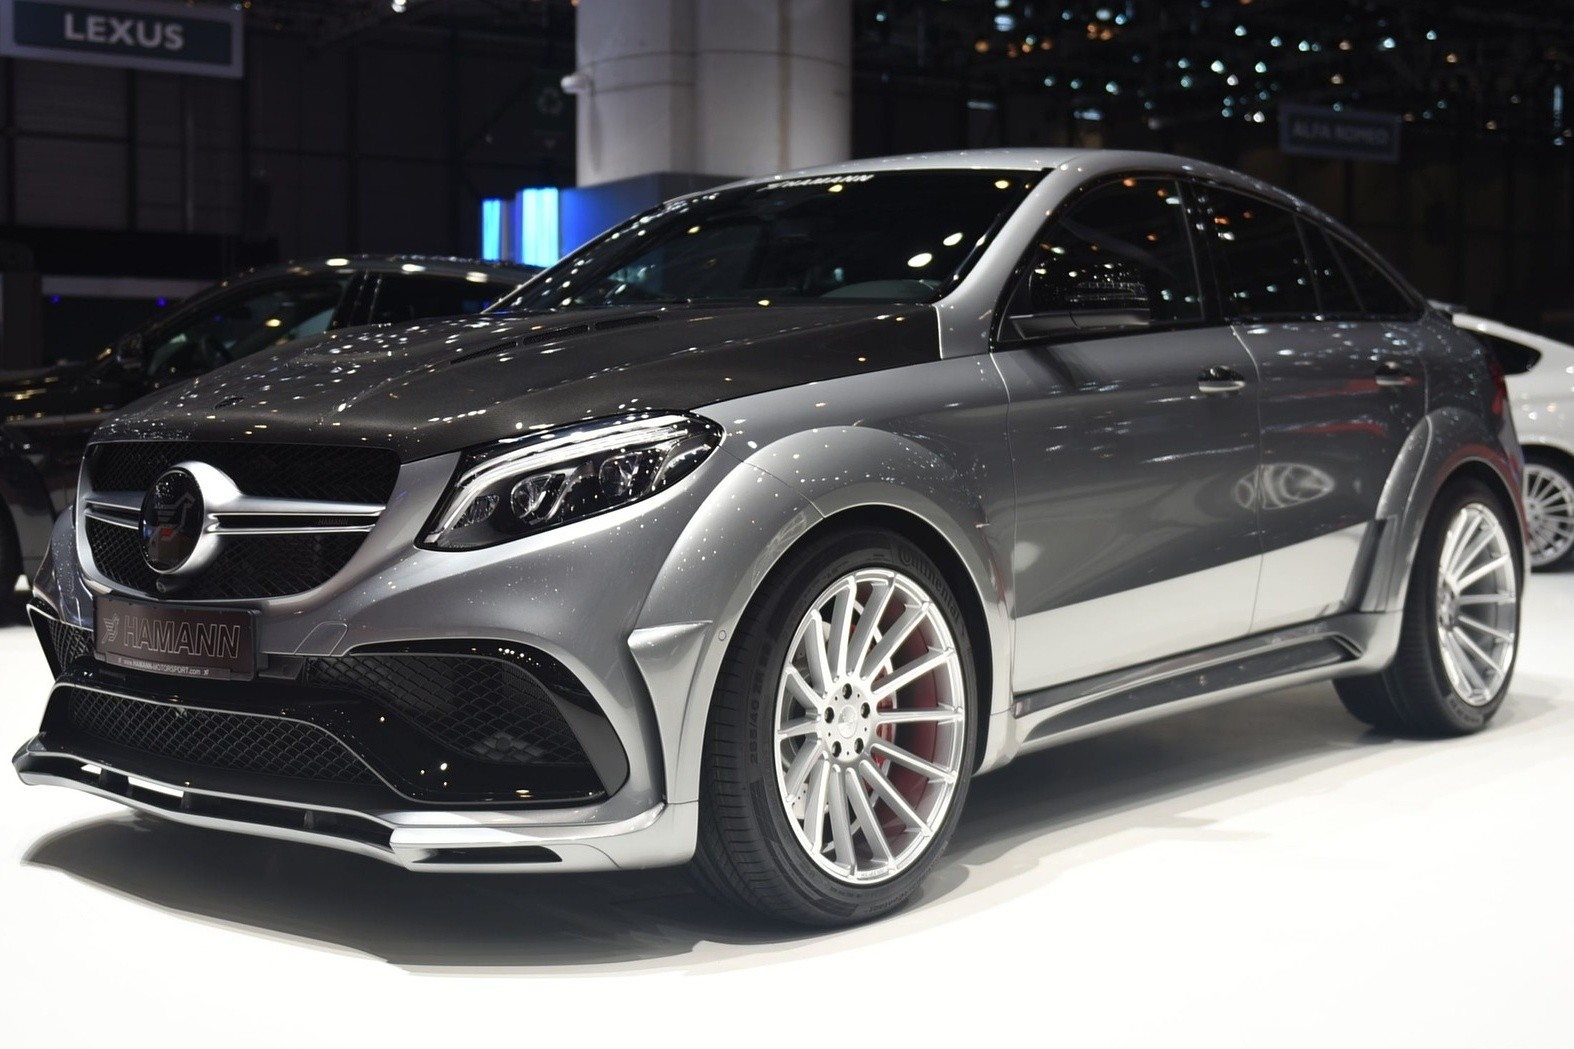 background - Hamann a GLE 63 S AMG!